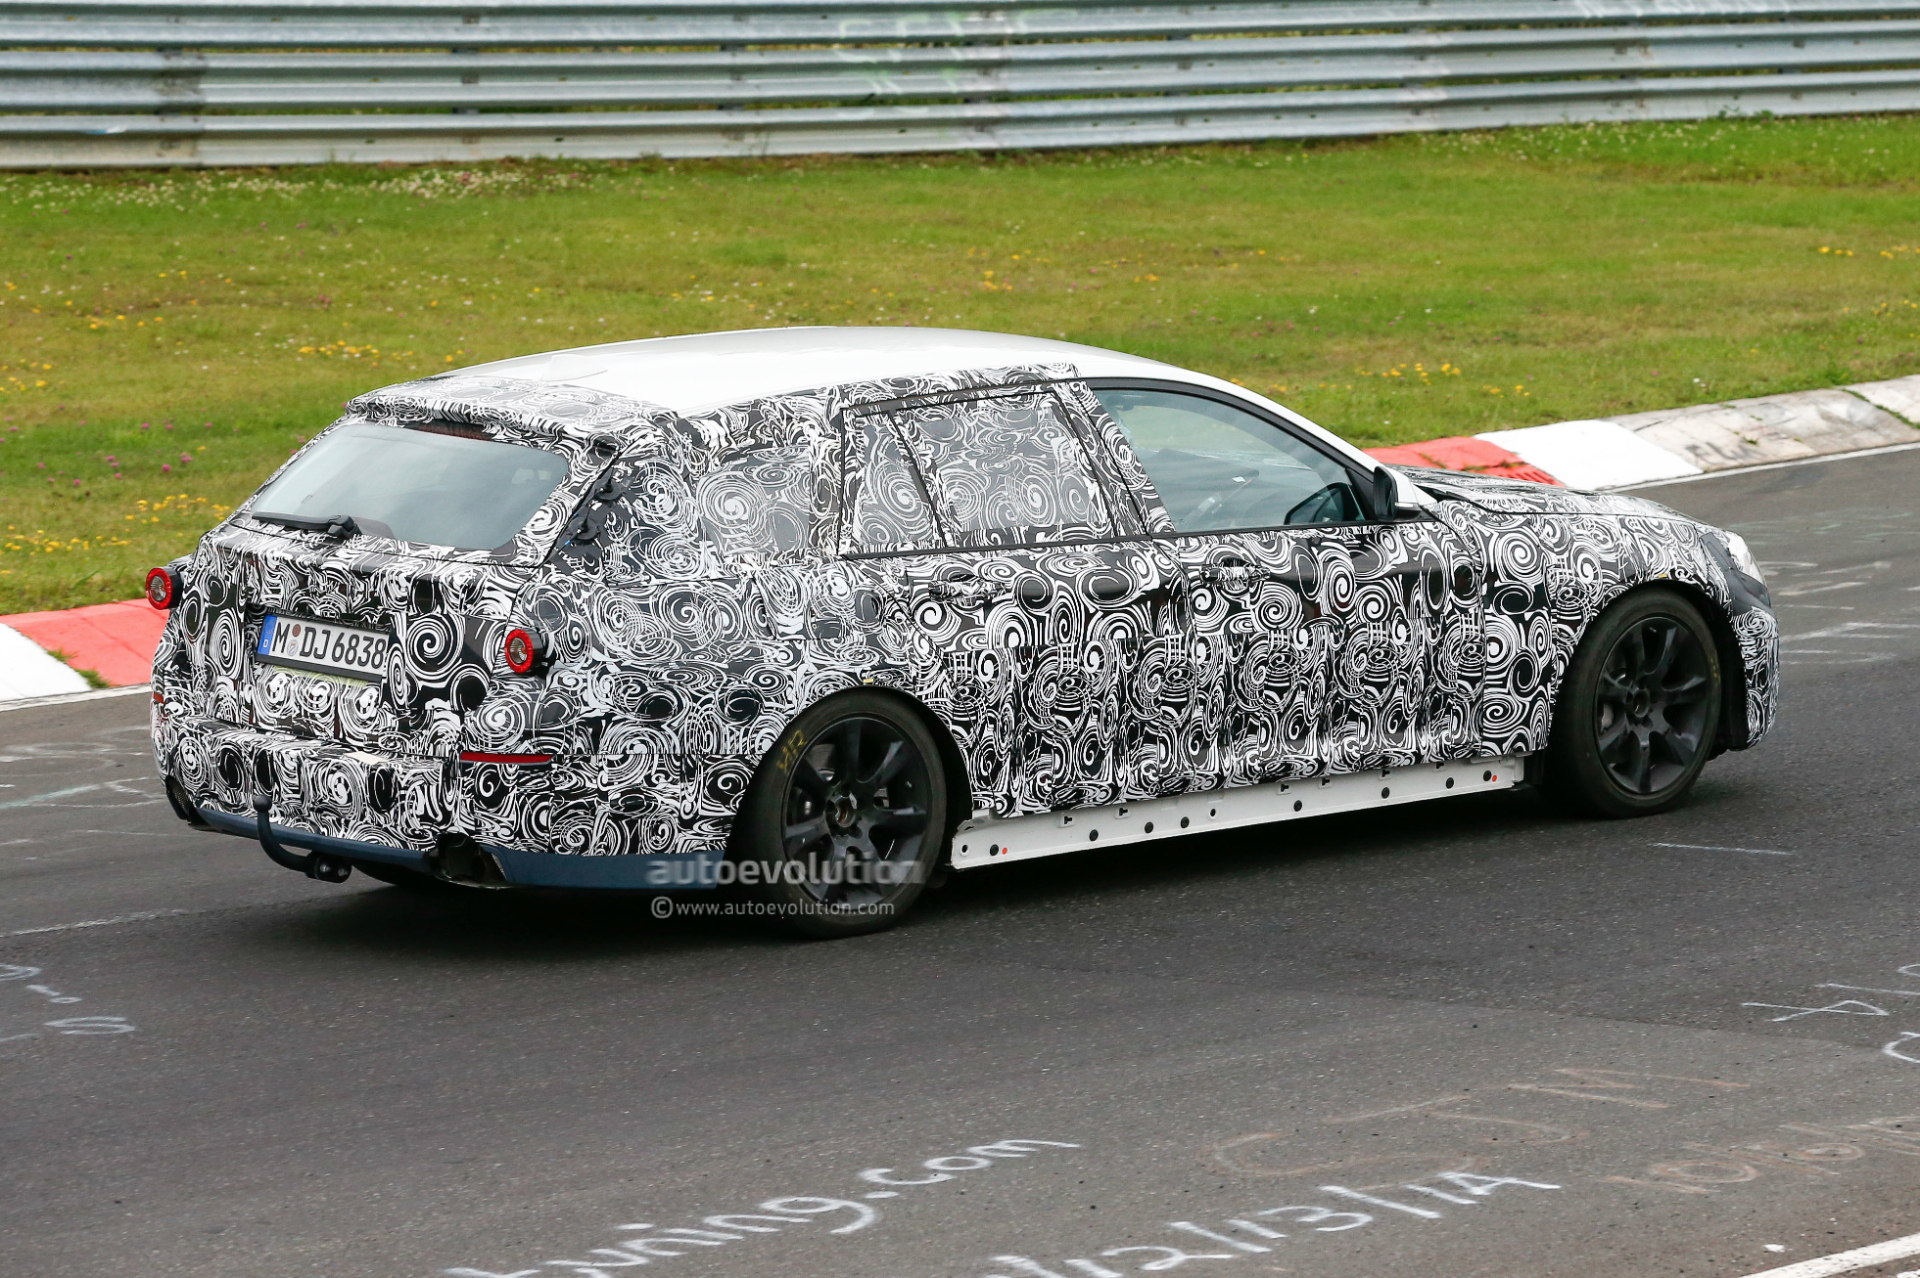 2016 - [BMW] Série 5 Berline & Touring [G30/G31] - Page 4 2016-bmw-5-series-touring-prototype-spied-inside-and-out-photo-gallery_7